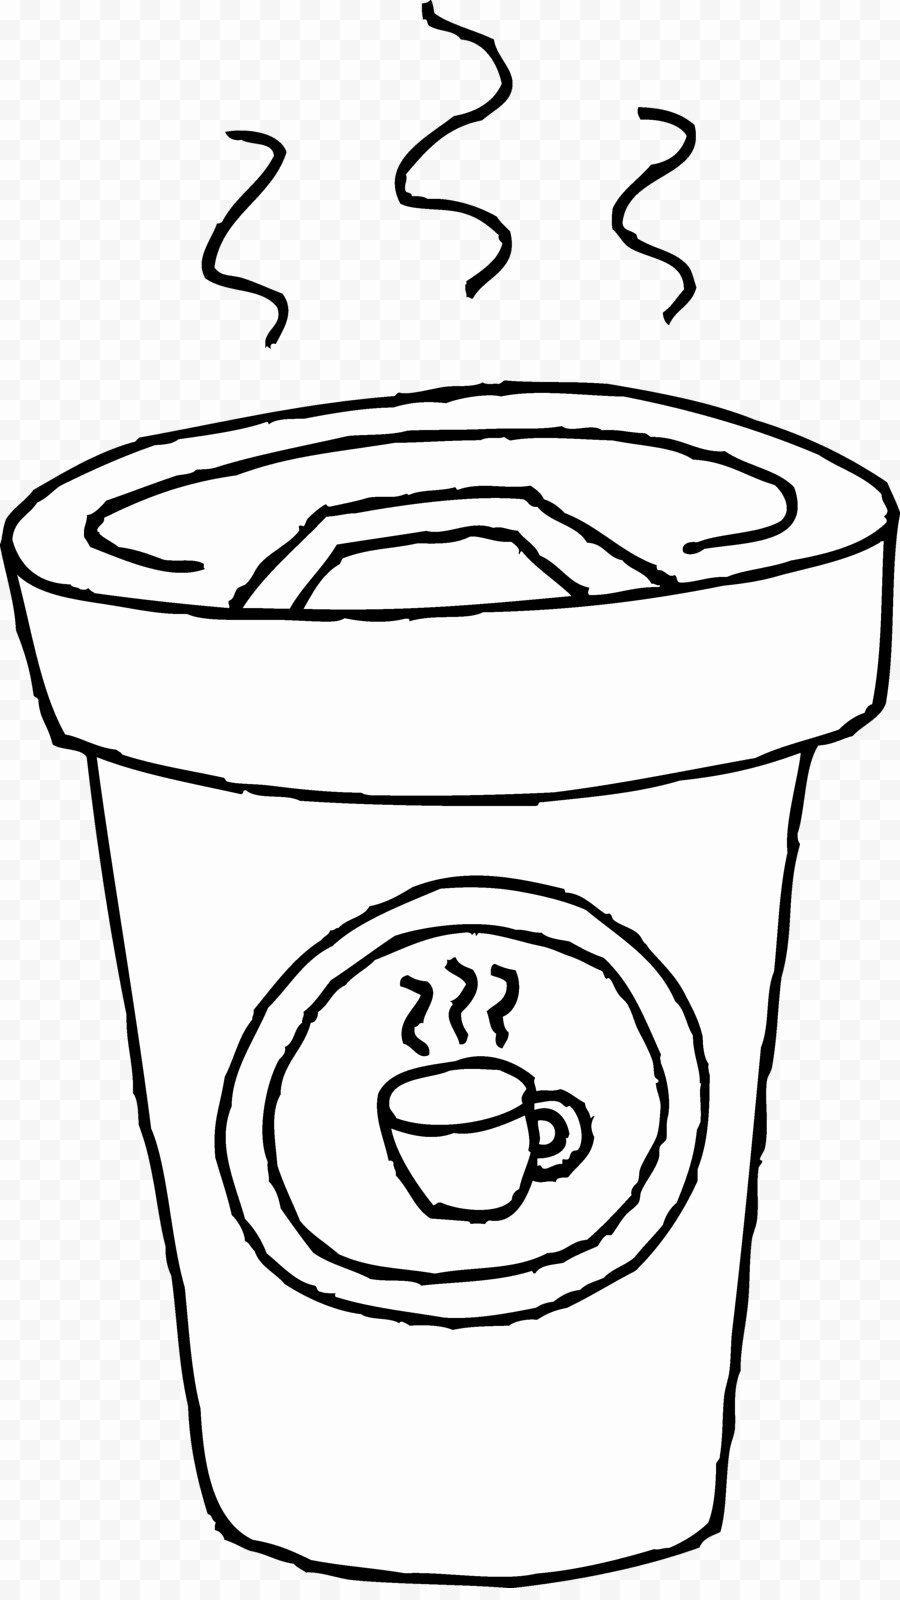 Cute Starbucks Coloring Pages Luxury Cup Tea Clipart Black And